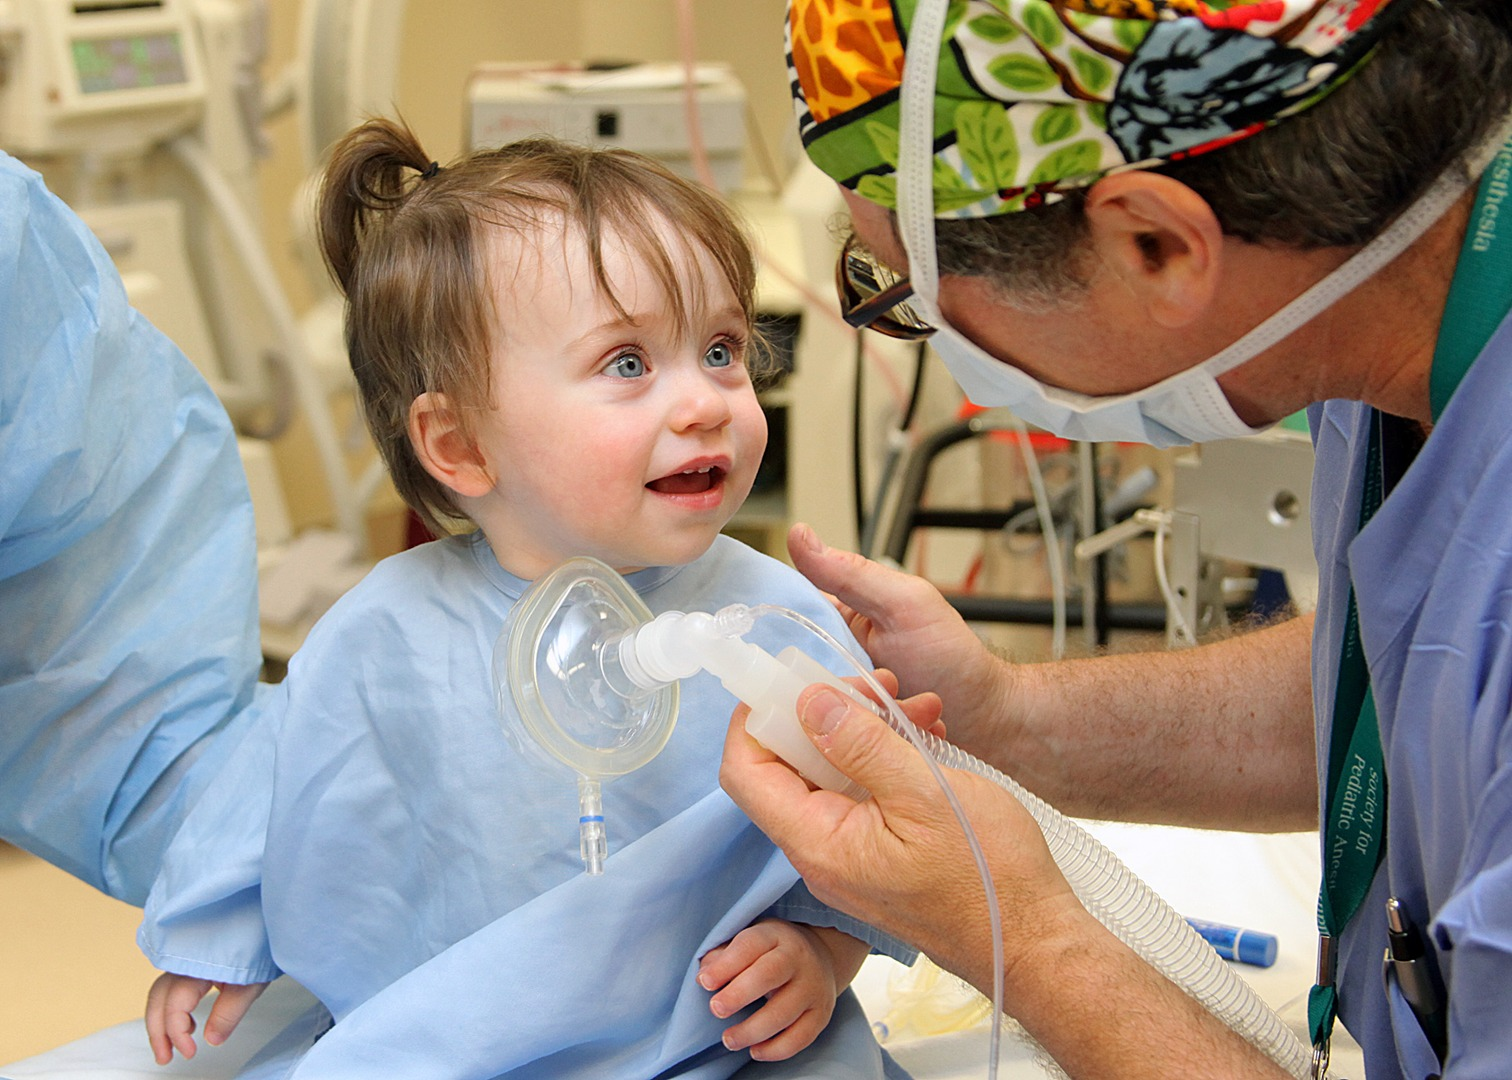 PEDIATRIC ANESTHESIOLOGY, CRITICAL AND INTENSIVE CARE